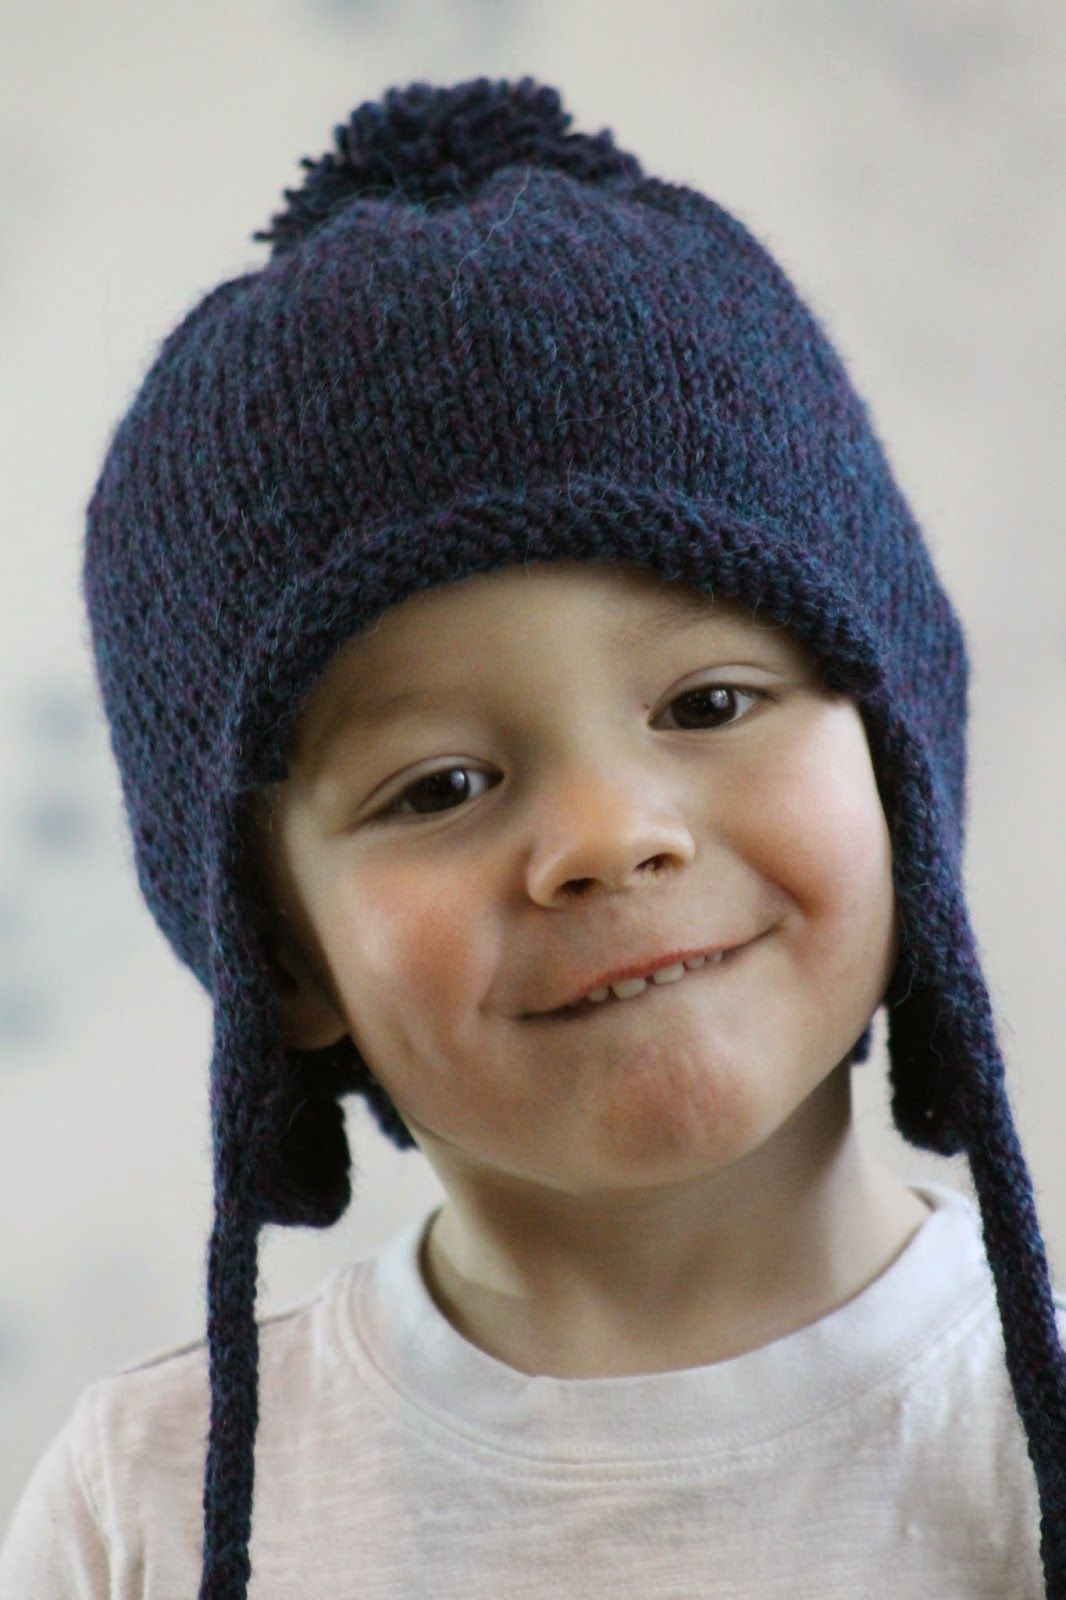 All in the Family Earflap Hat | Projects to Knit | Pinterest ...